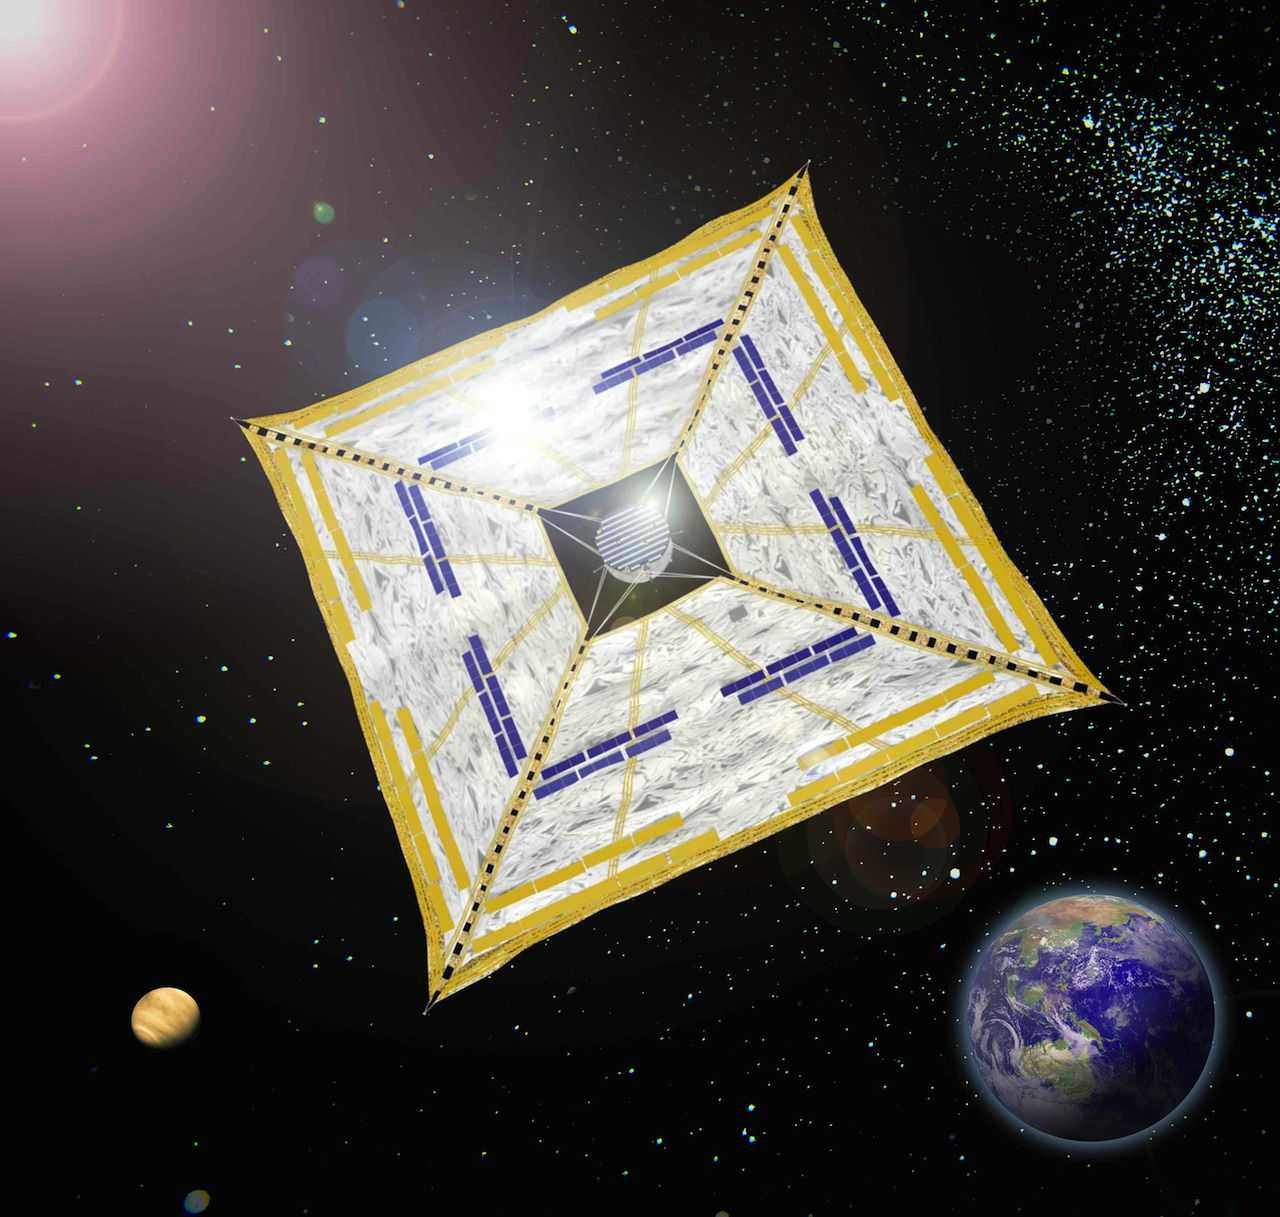 IKAROS Spacecraft (Courtesy of JAXA)